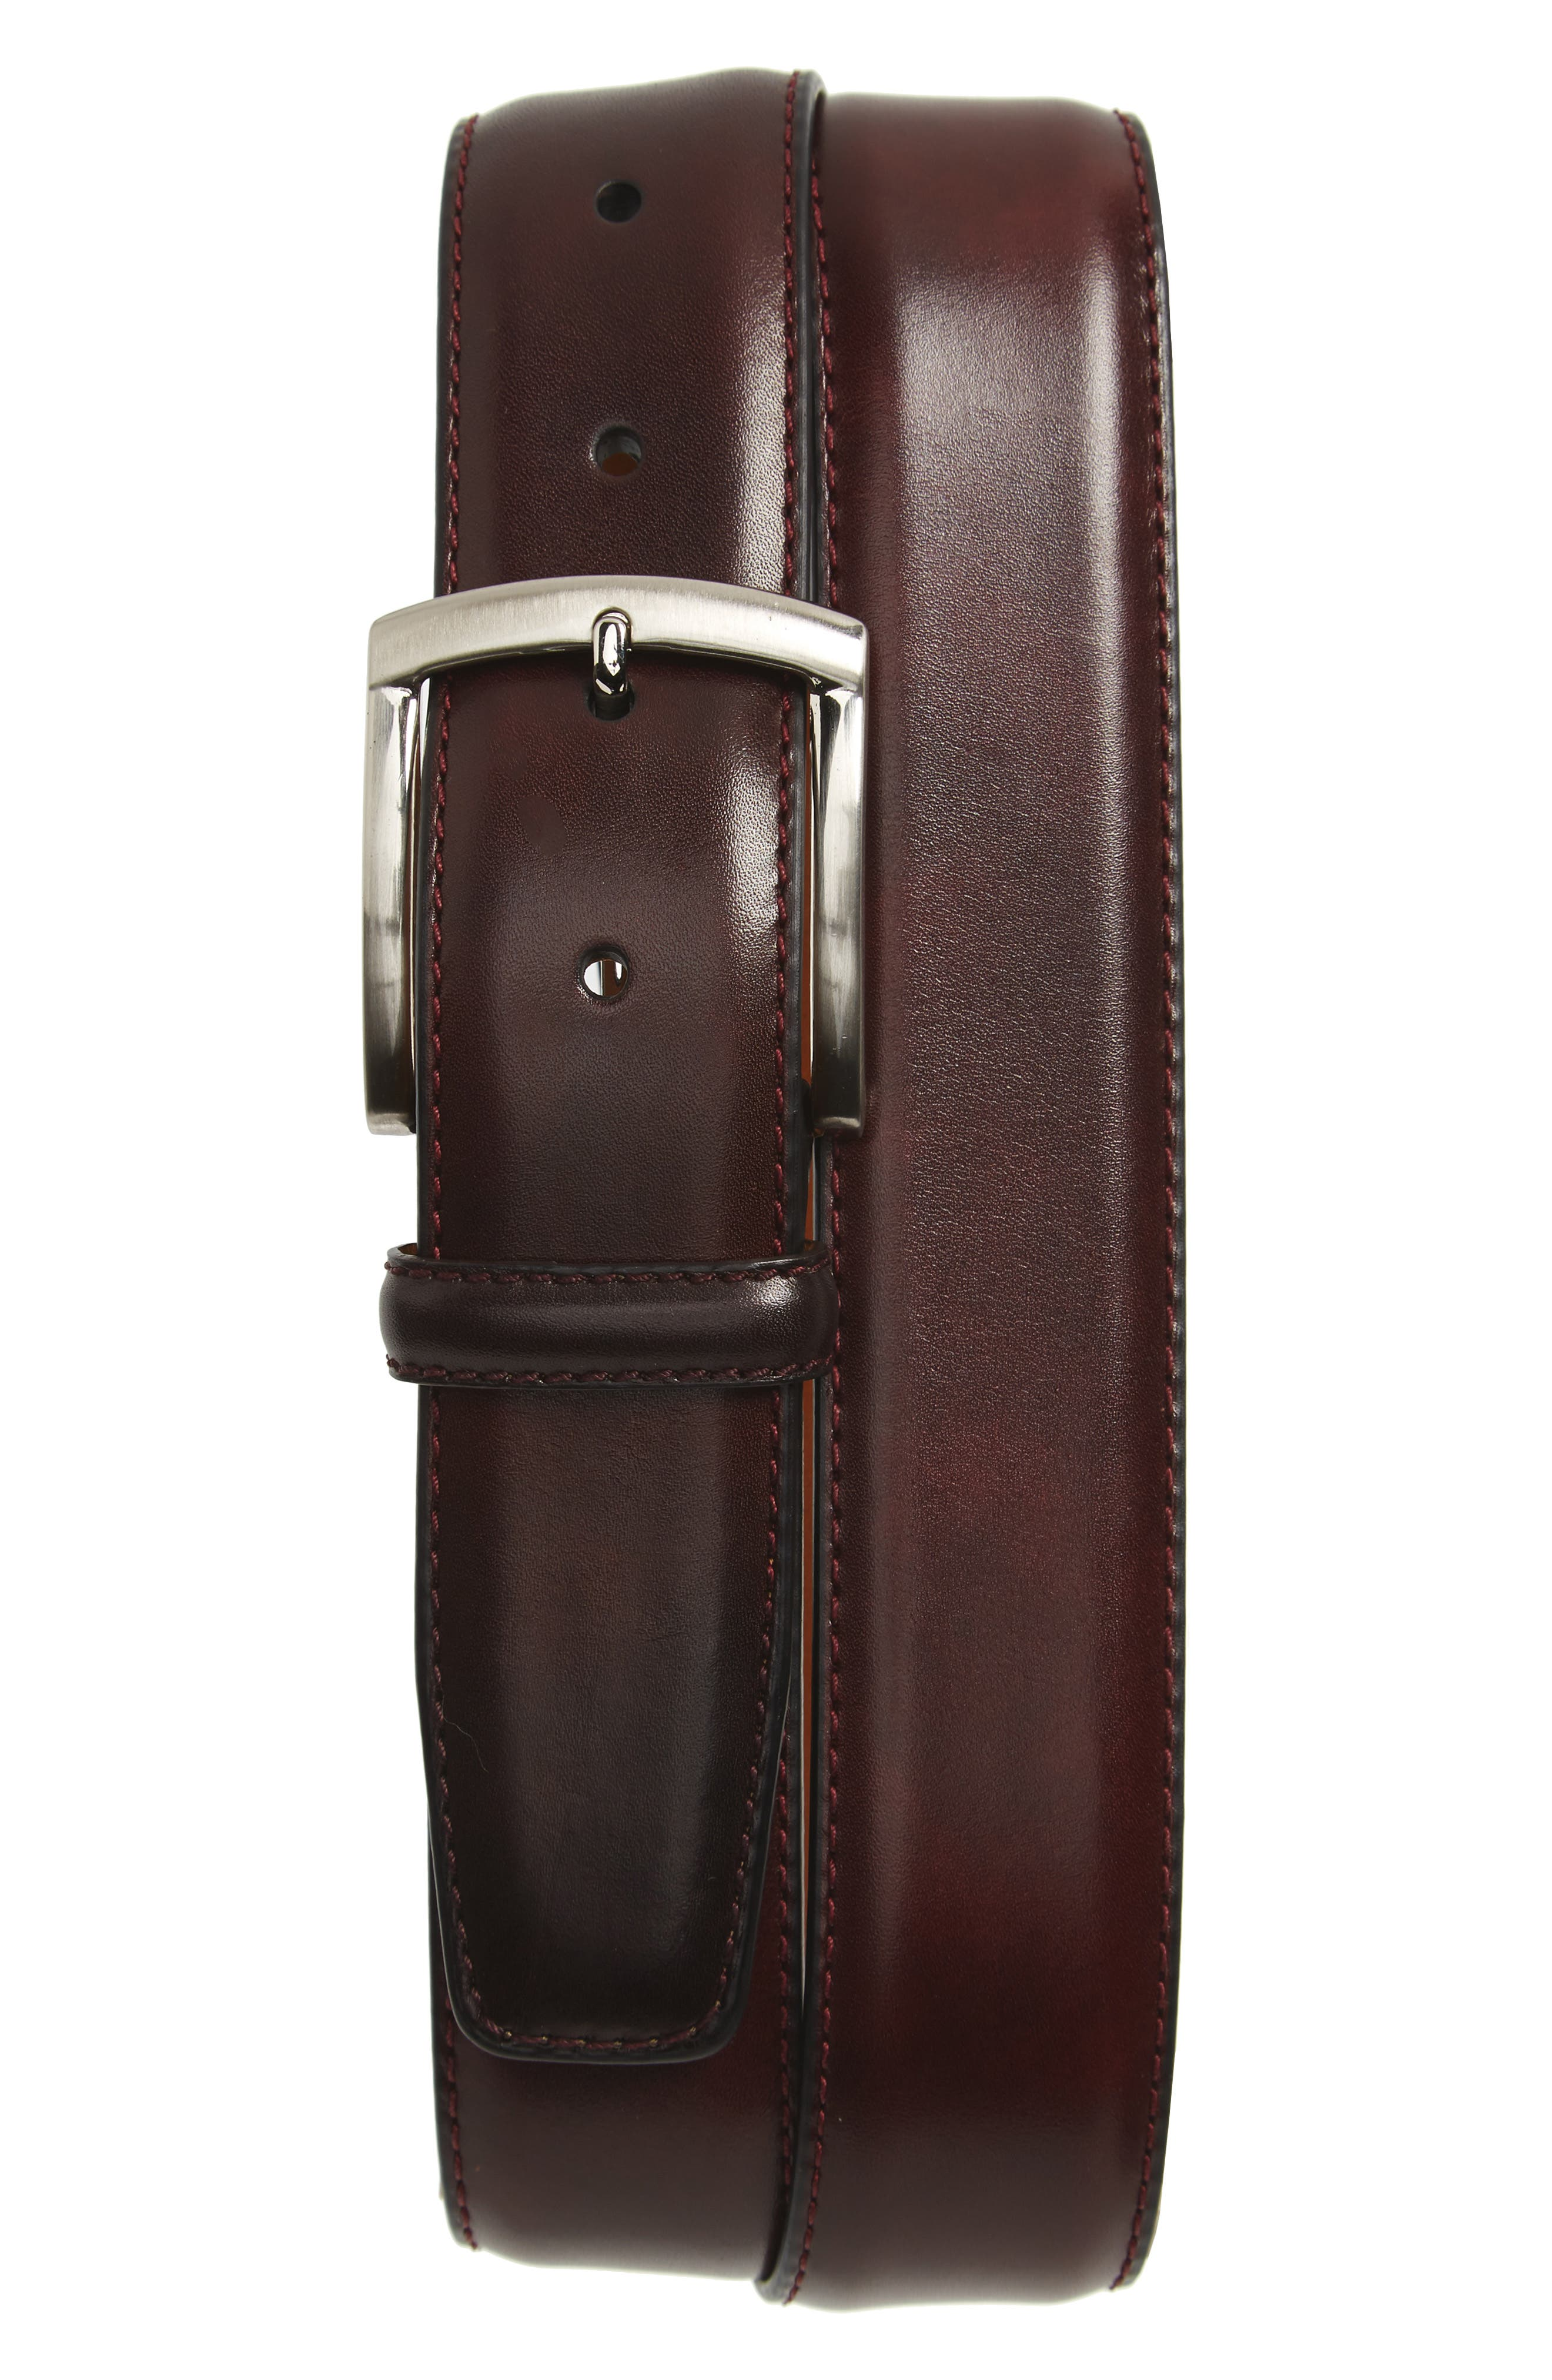 A calfskin leather belt in a rich burgundy hue is secured with brushed silvertone hardware for a polished finish. Style Name: Magnanni Calfskin Leather Belt. Style Number: 5367016. Available in stores.